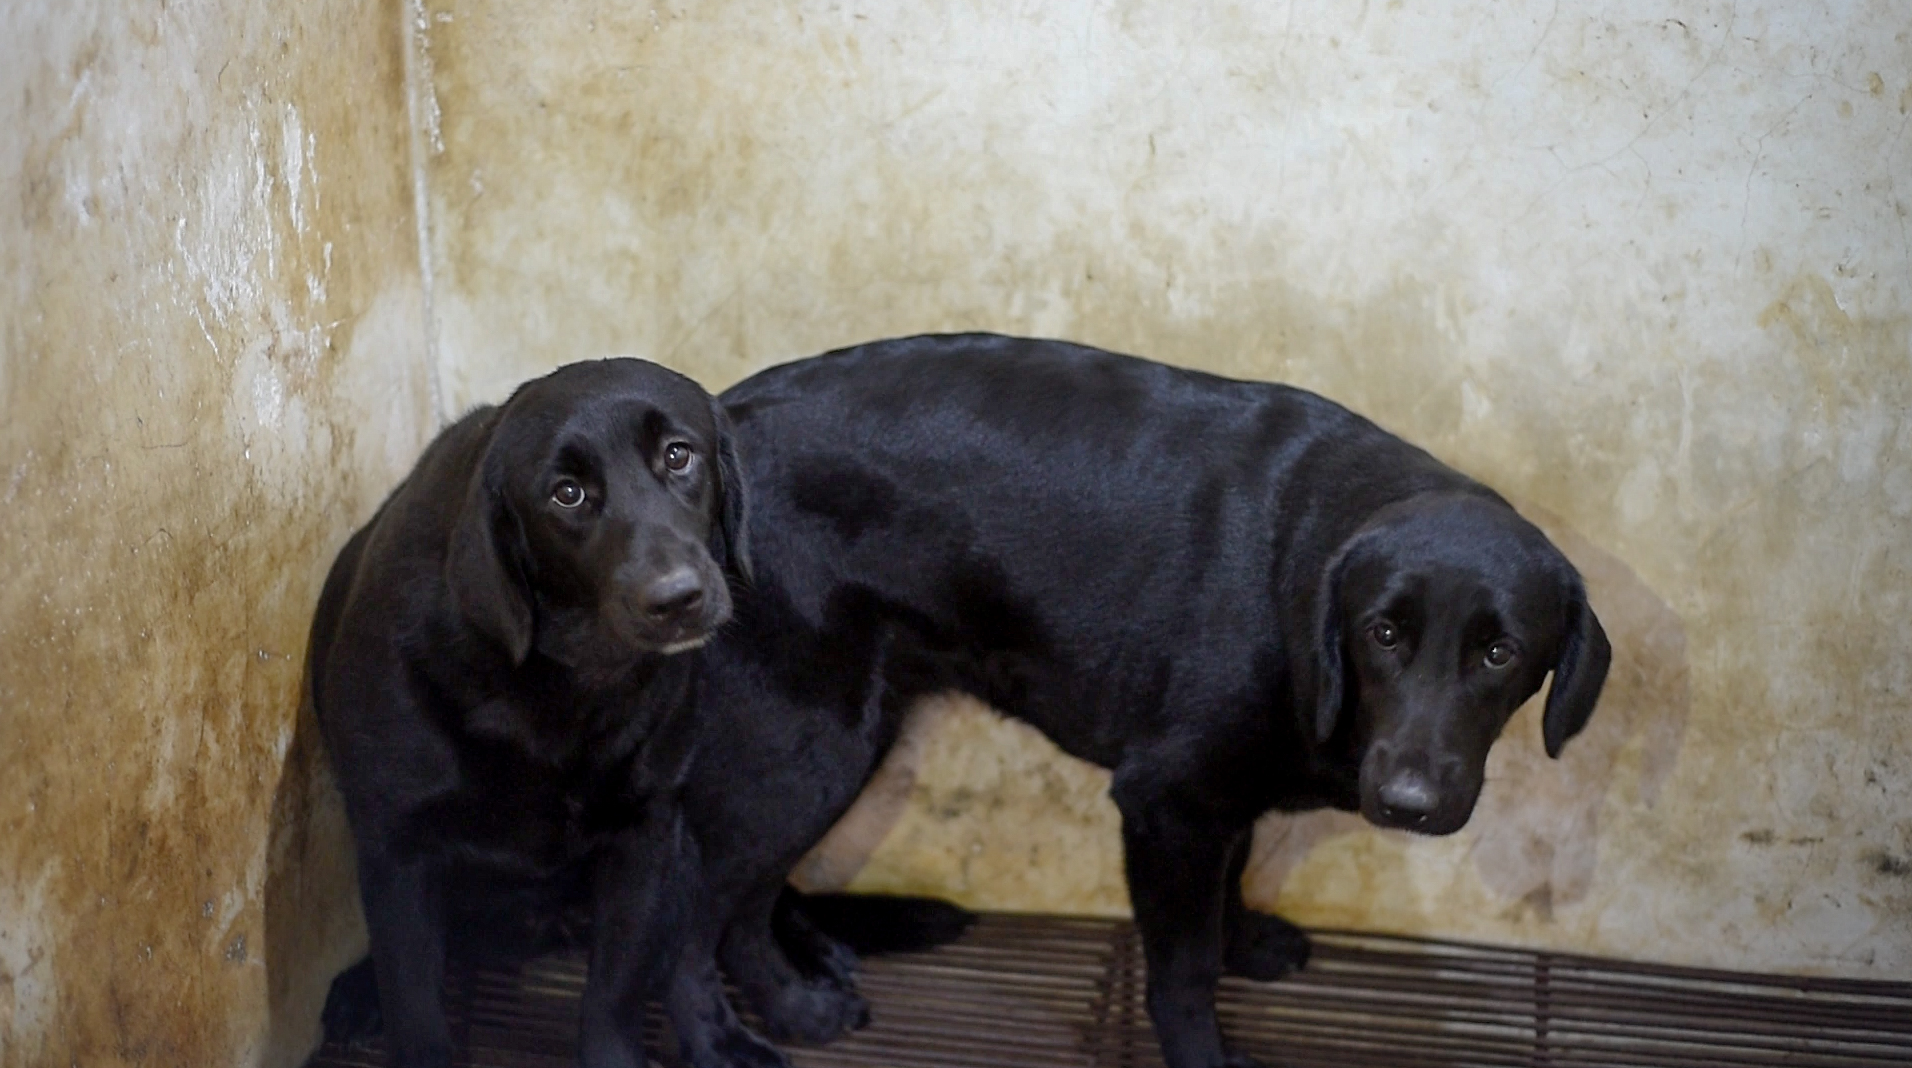 Stolen pets often get turned into meat, too. Here, two black Labradors await their slaughter.